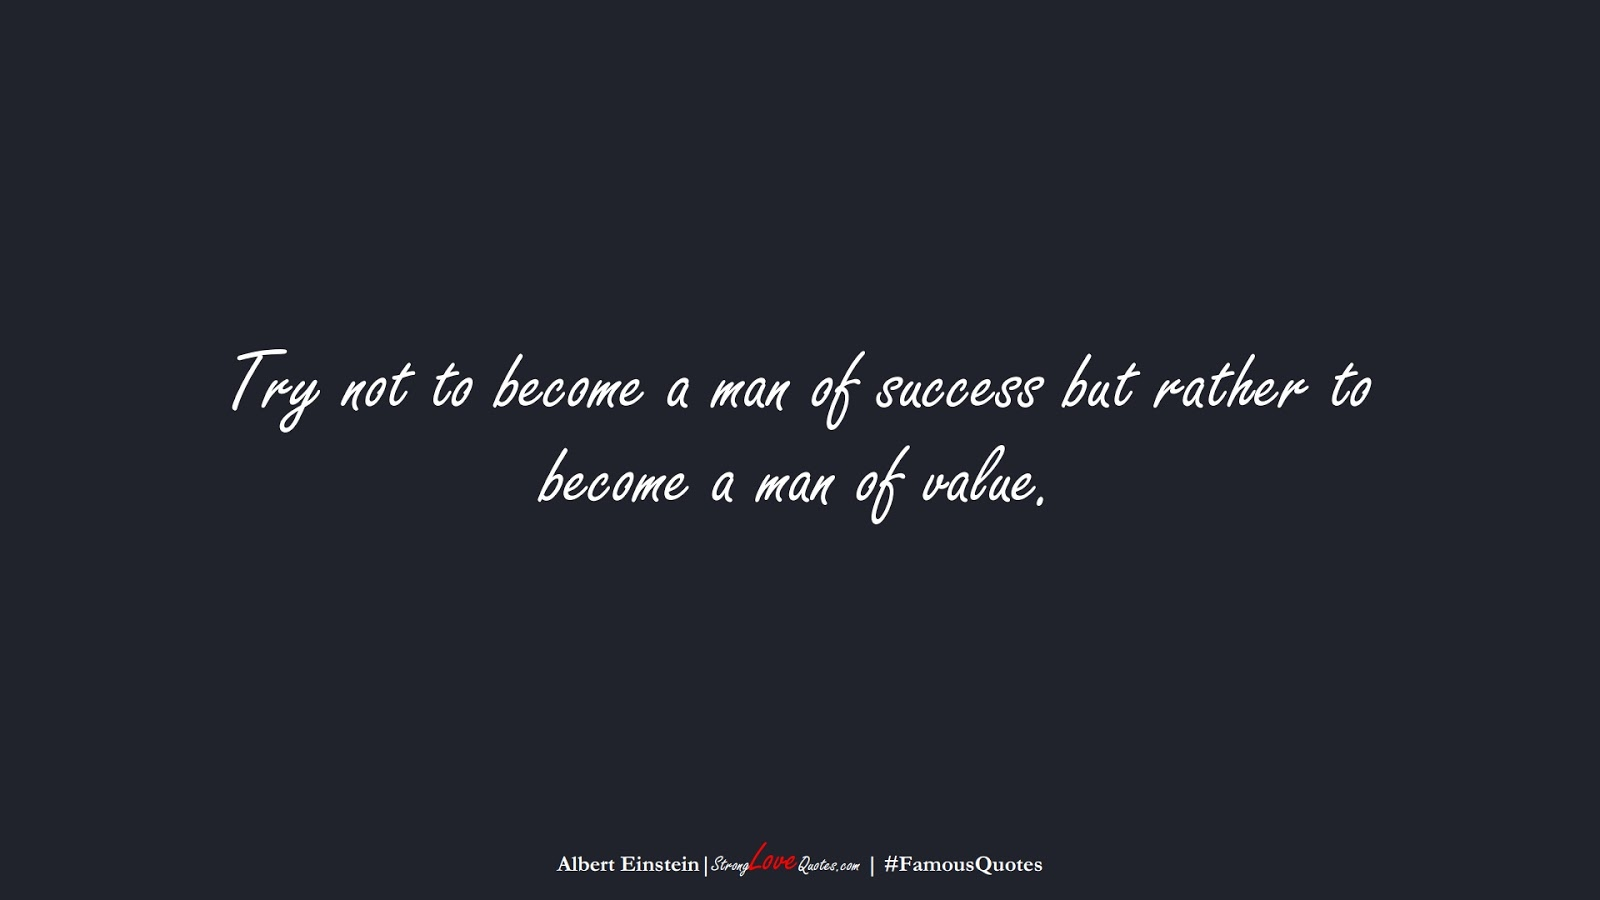 Try not to become a man of success but rather to become a man of value. (Albert Einstein);  #FamousQuotes